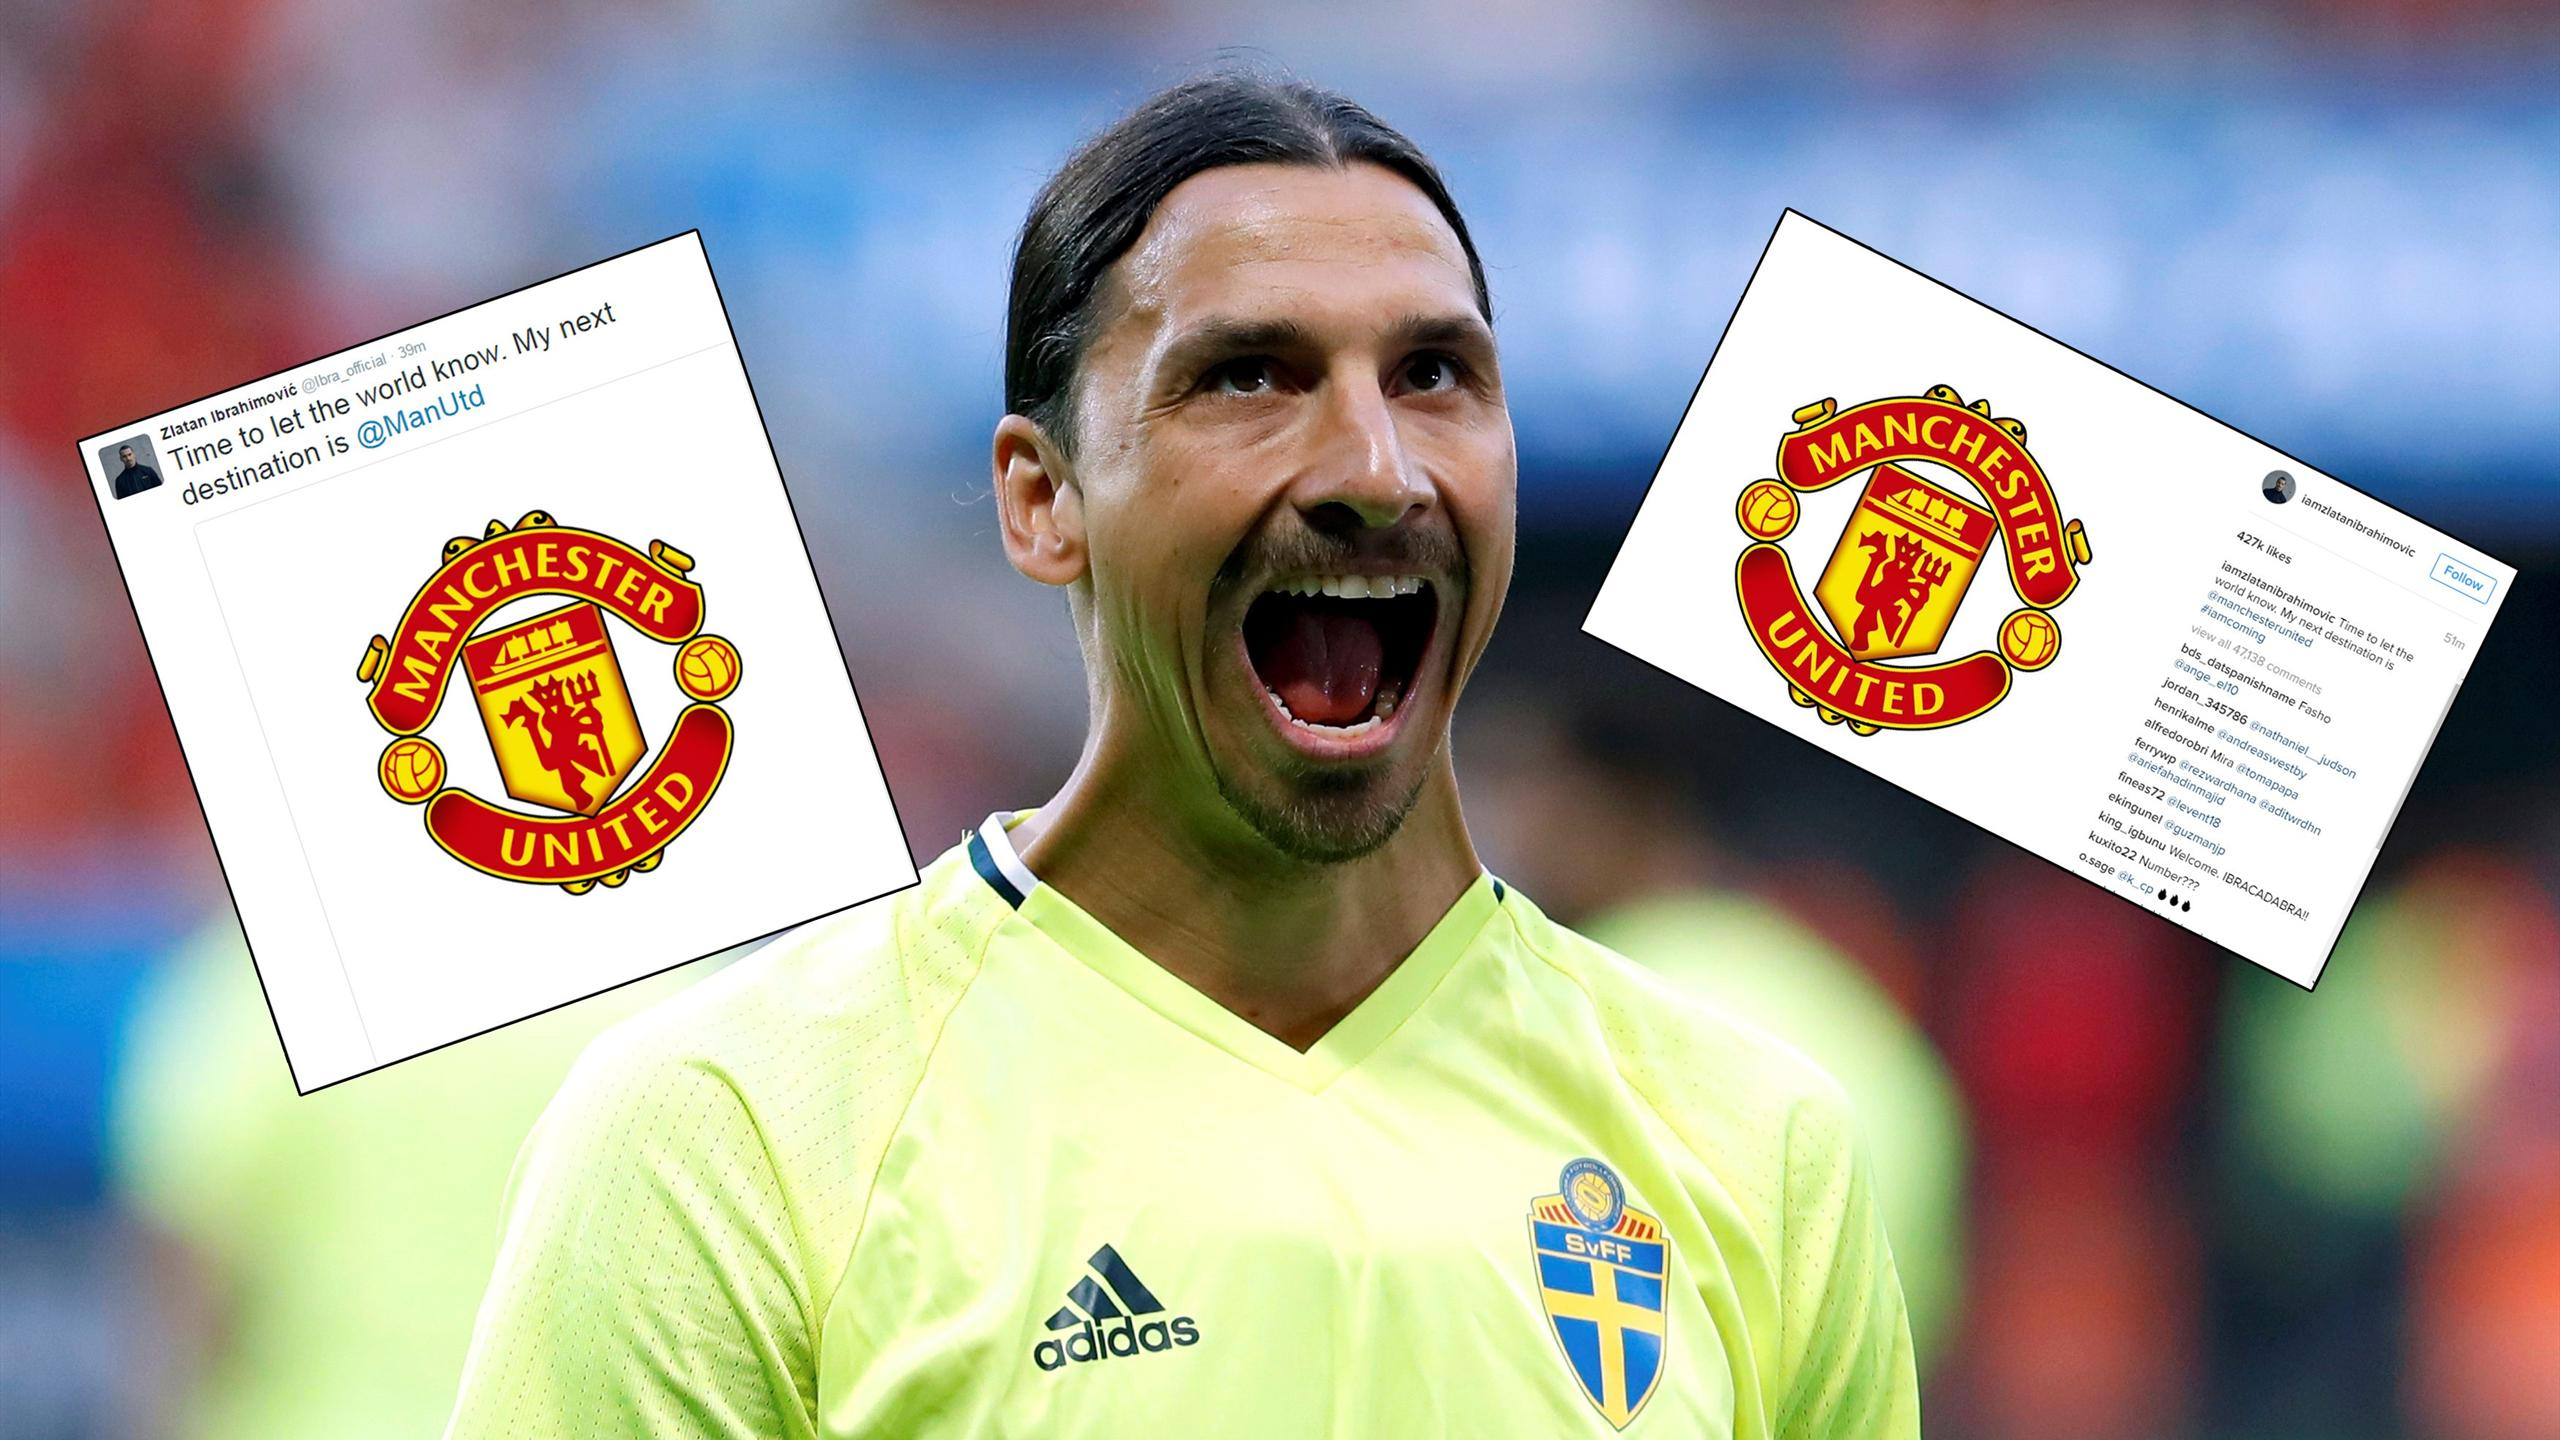 Reaction to Zlatan Ibrahimovic announcing Manchester United move